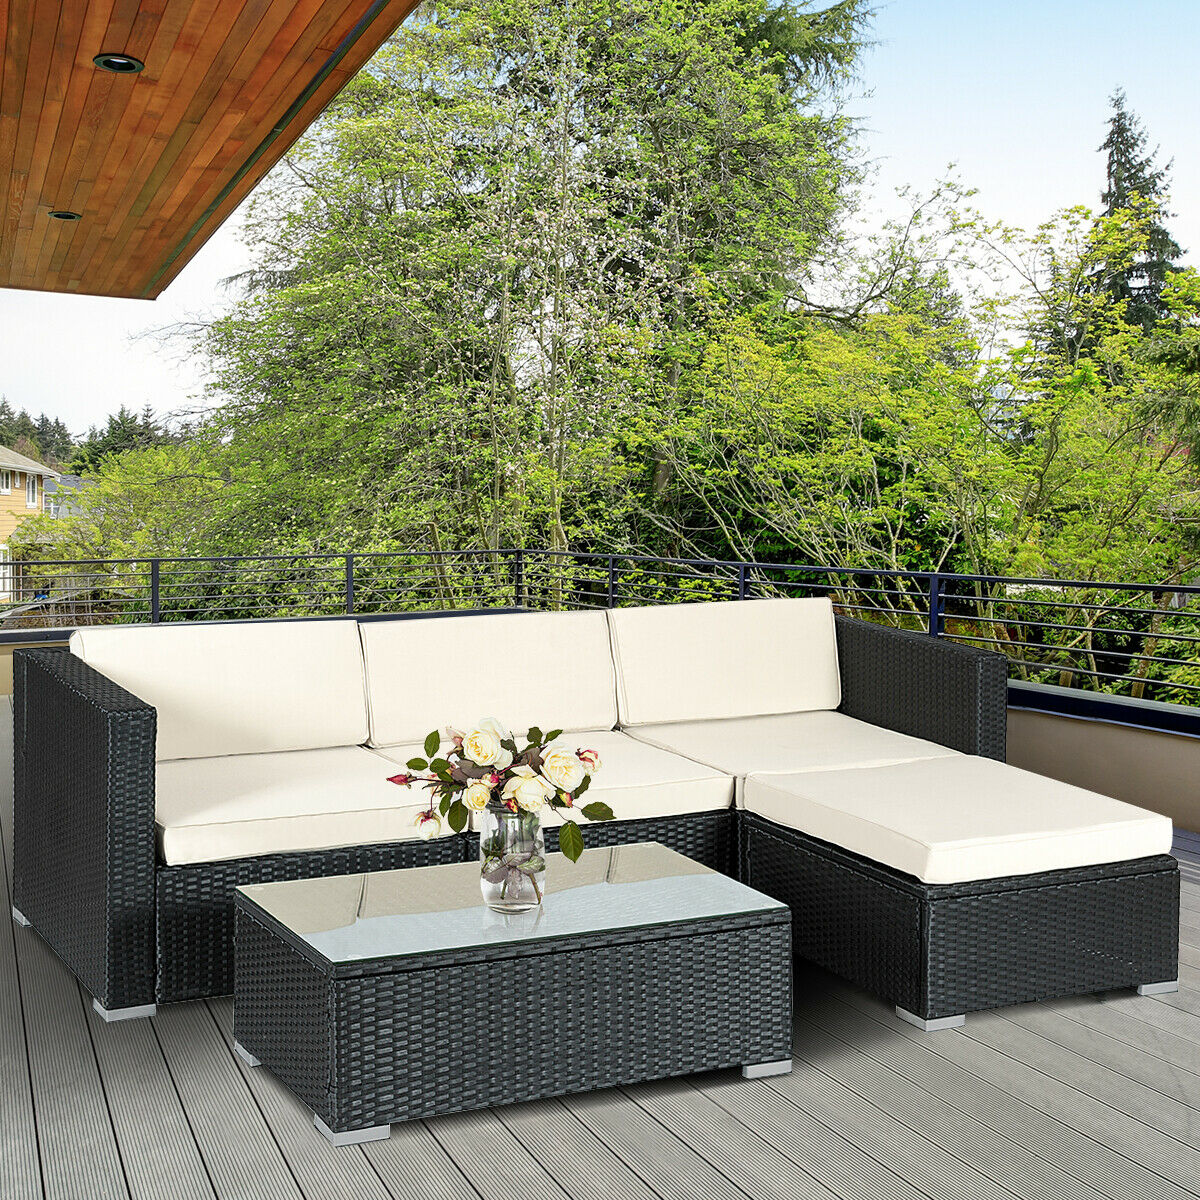 Costway 5 PCS Patio Furniture Set Rattan Wicker Table Shelf Garden Sofa W/ Cushion Black